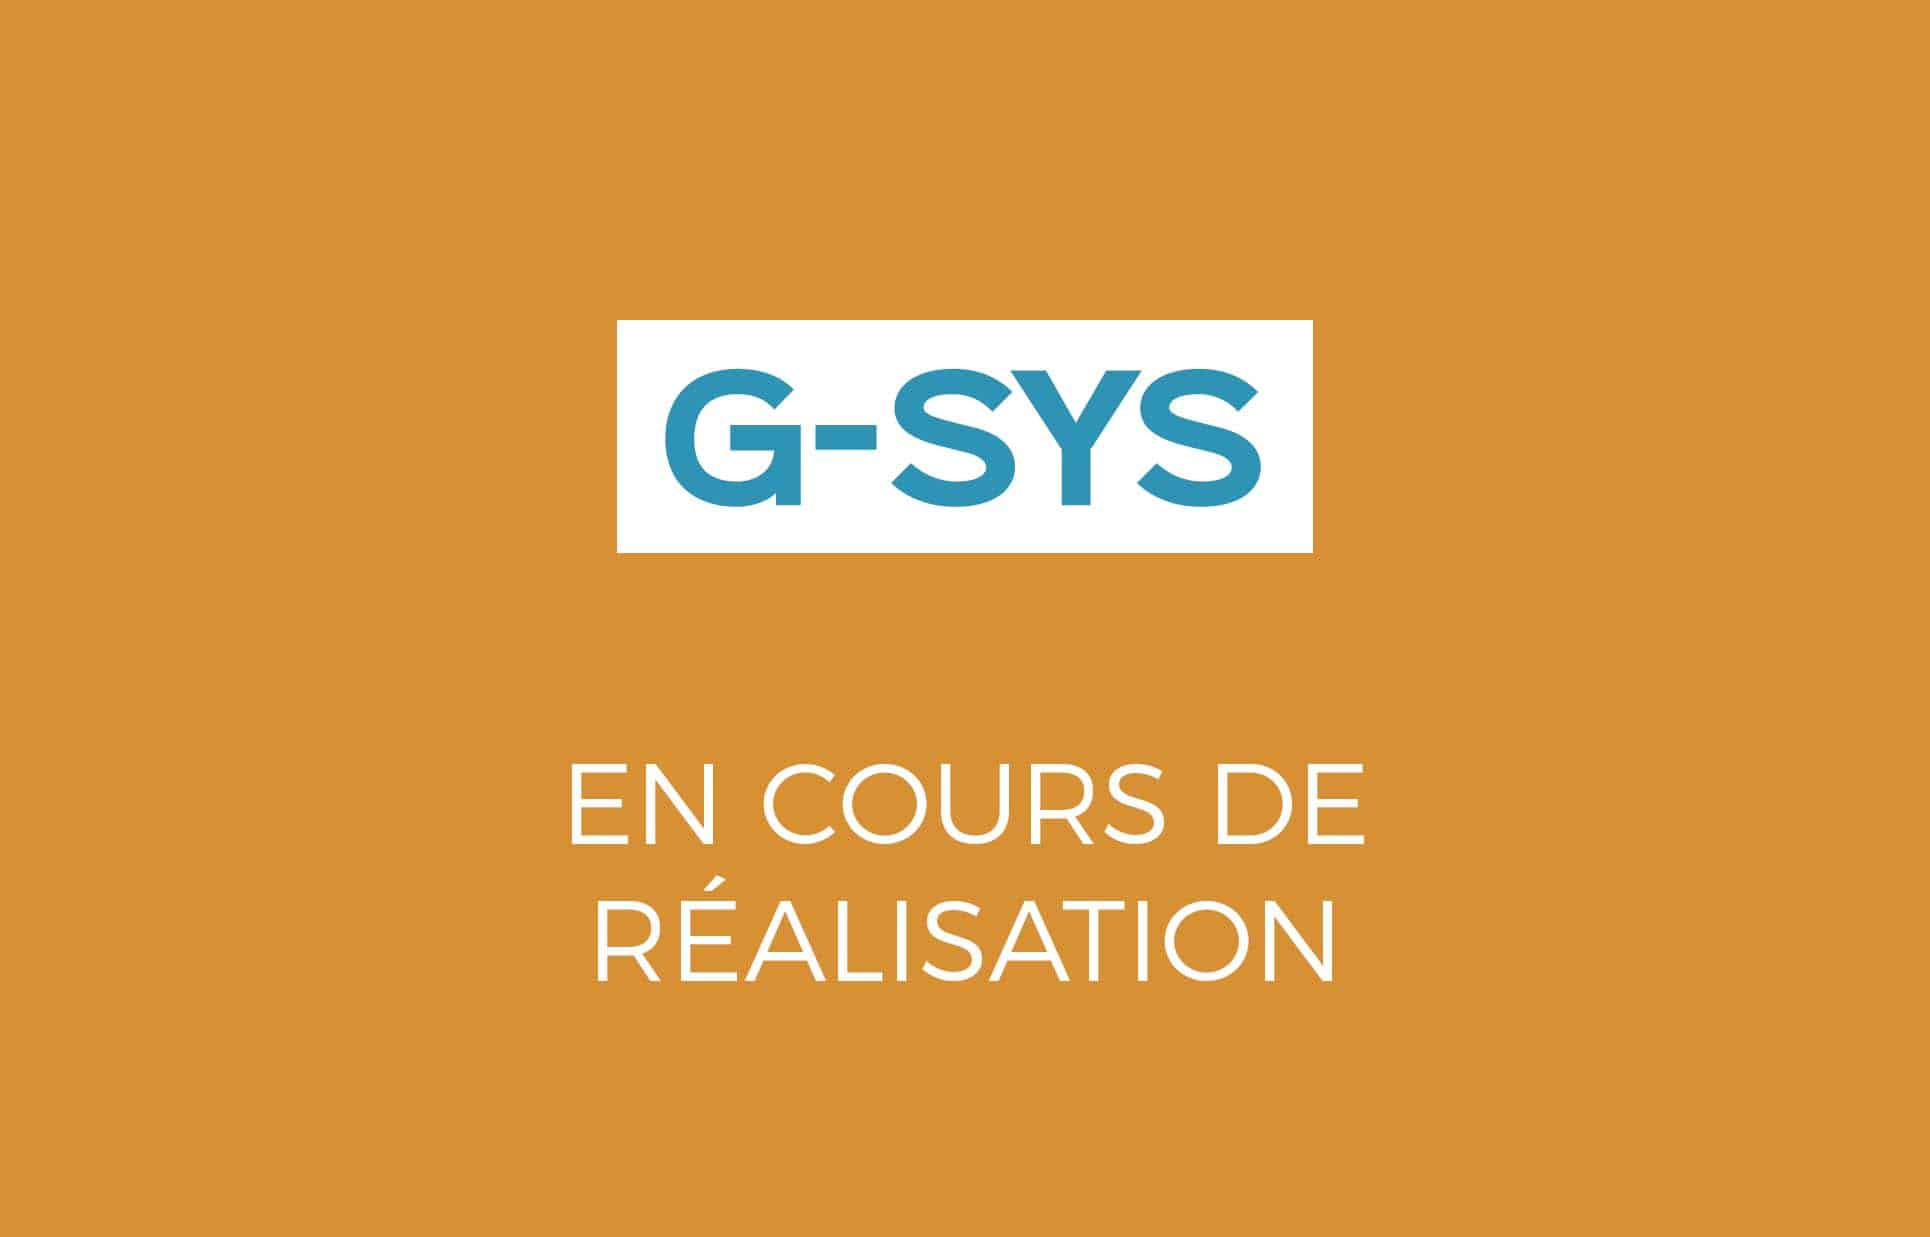 G-SYS